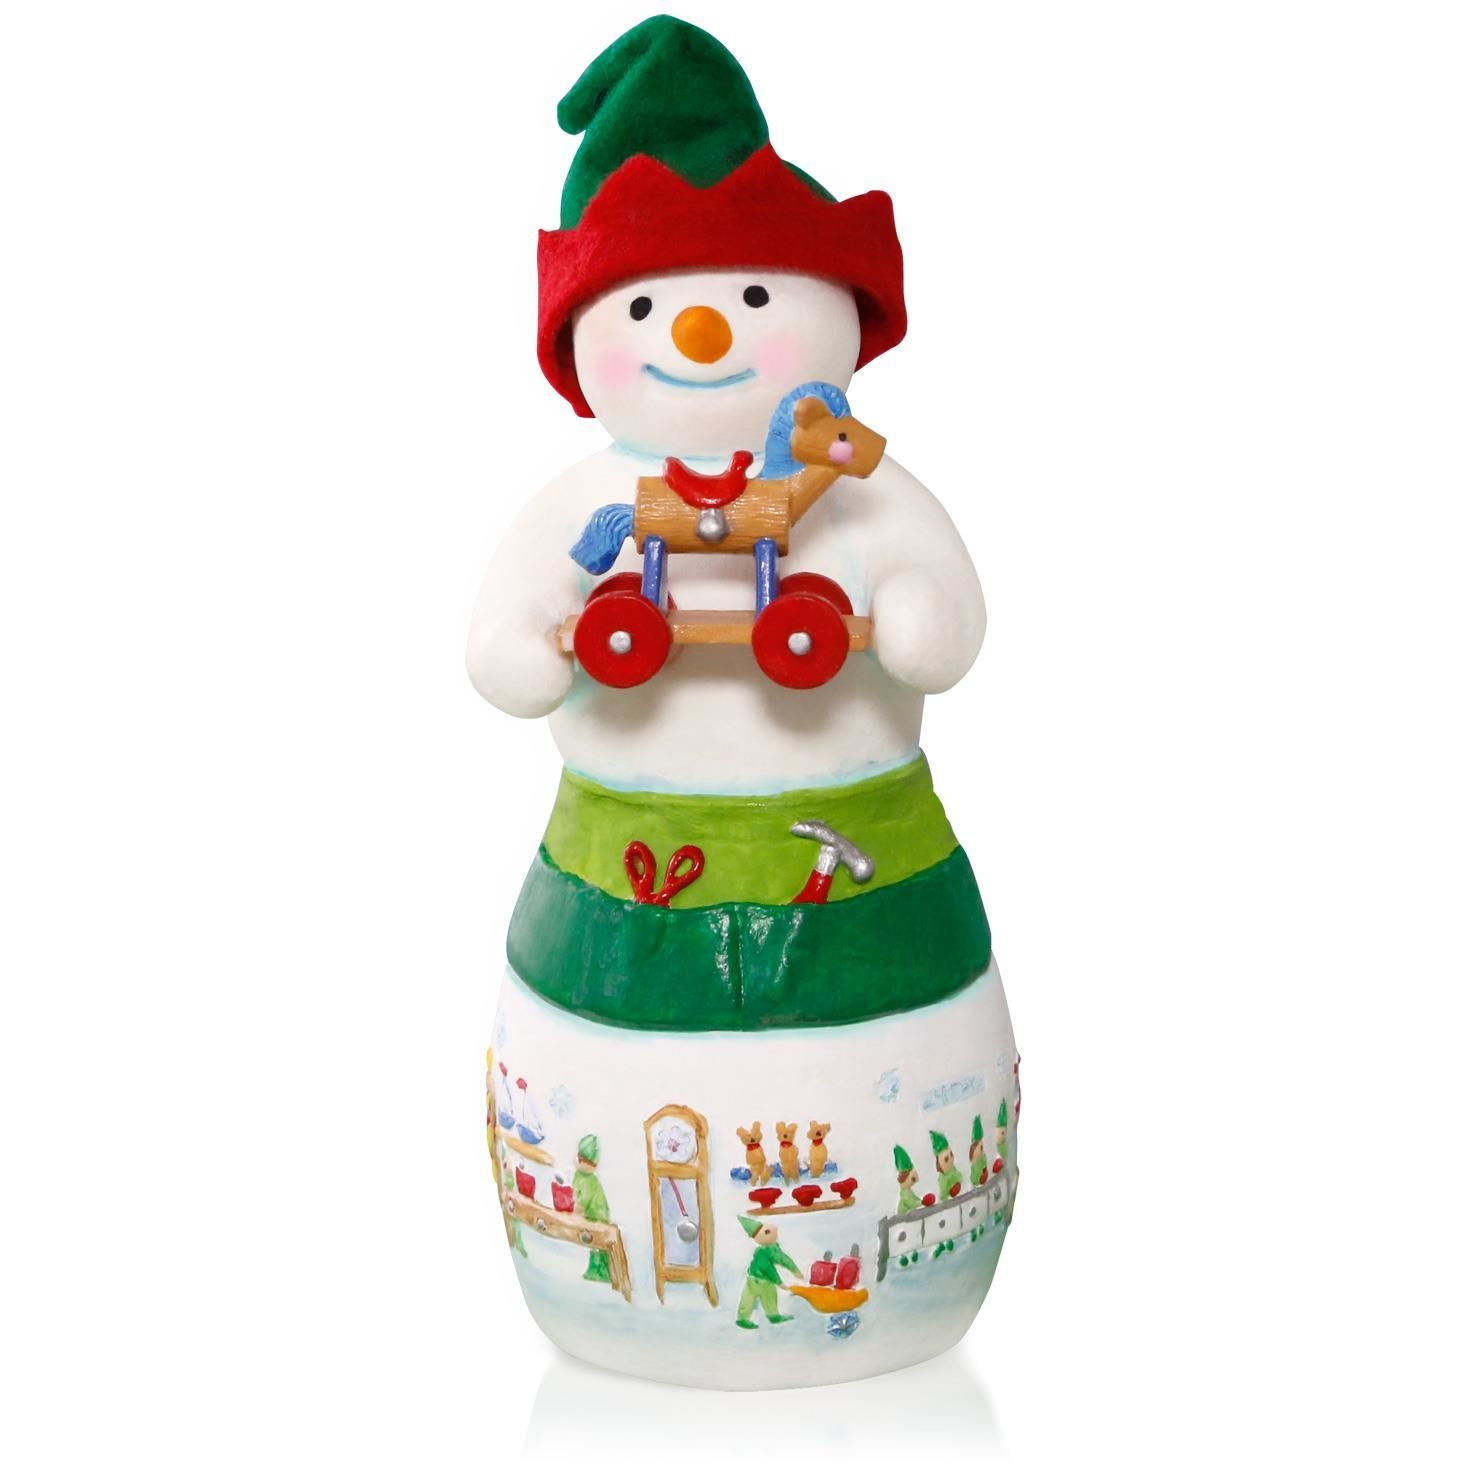 Hans K Woodsworth Snowtop Lodge Porcelain Snowman Elf Ornament 11th In The Series Available July